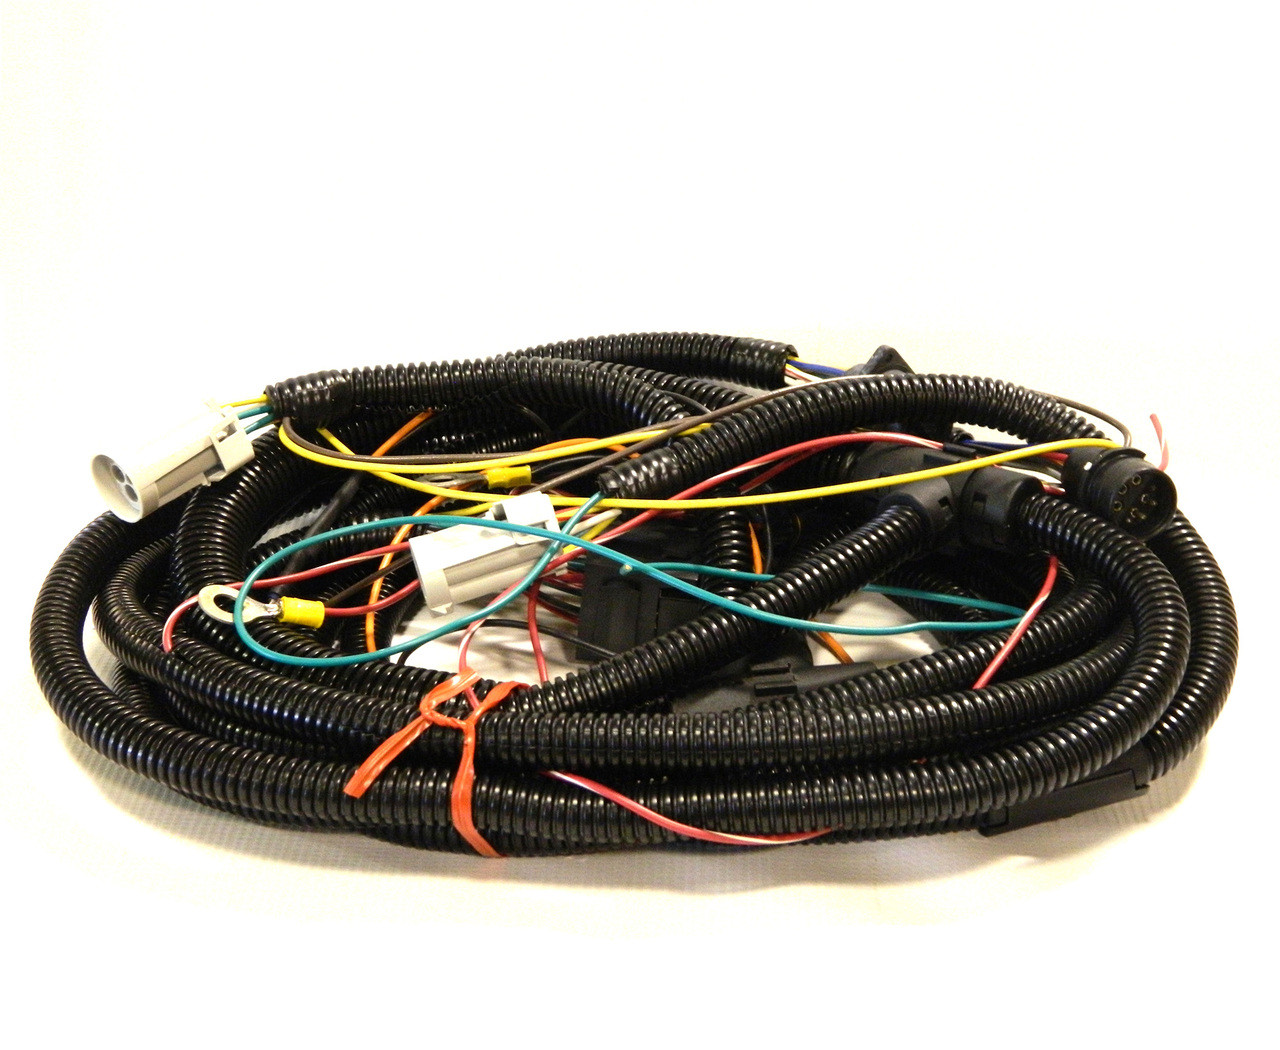 HN38813034 --- Hiniker Underhood Wiring Harness